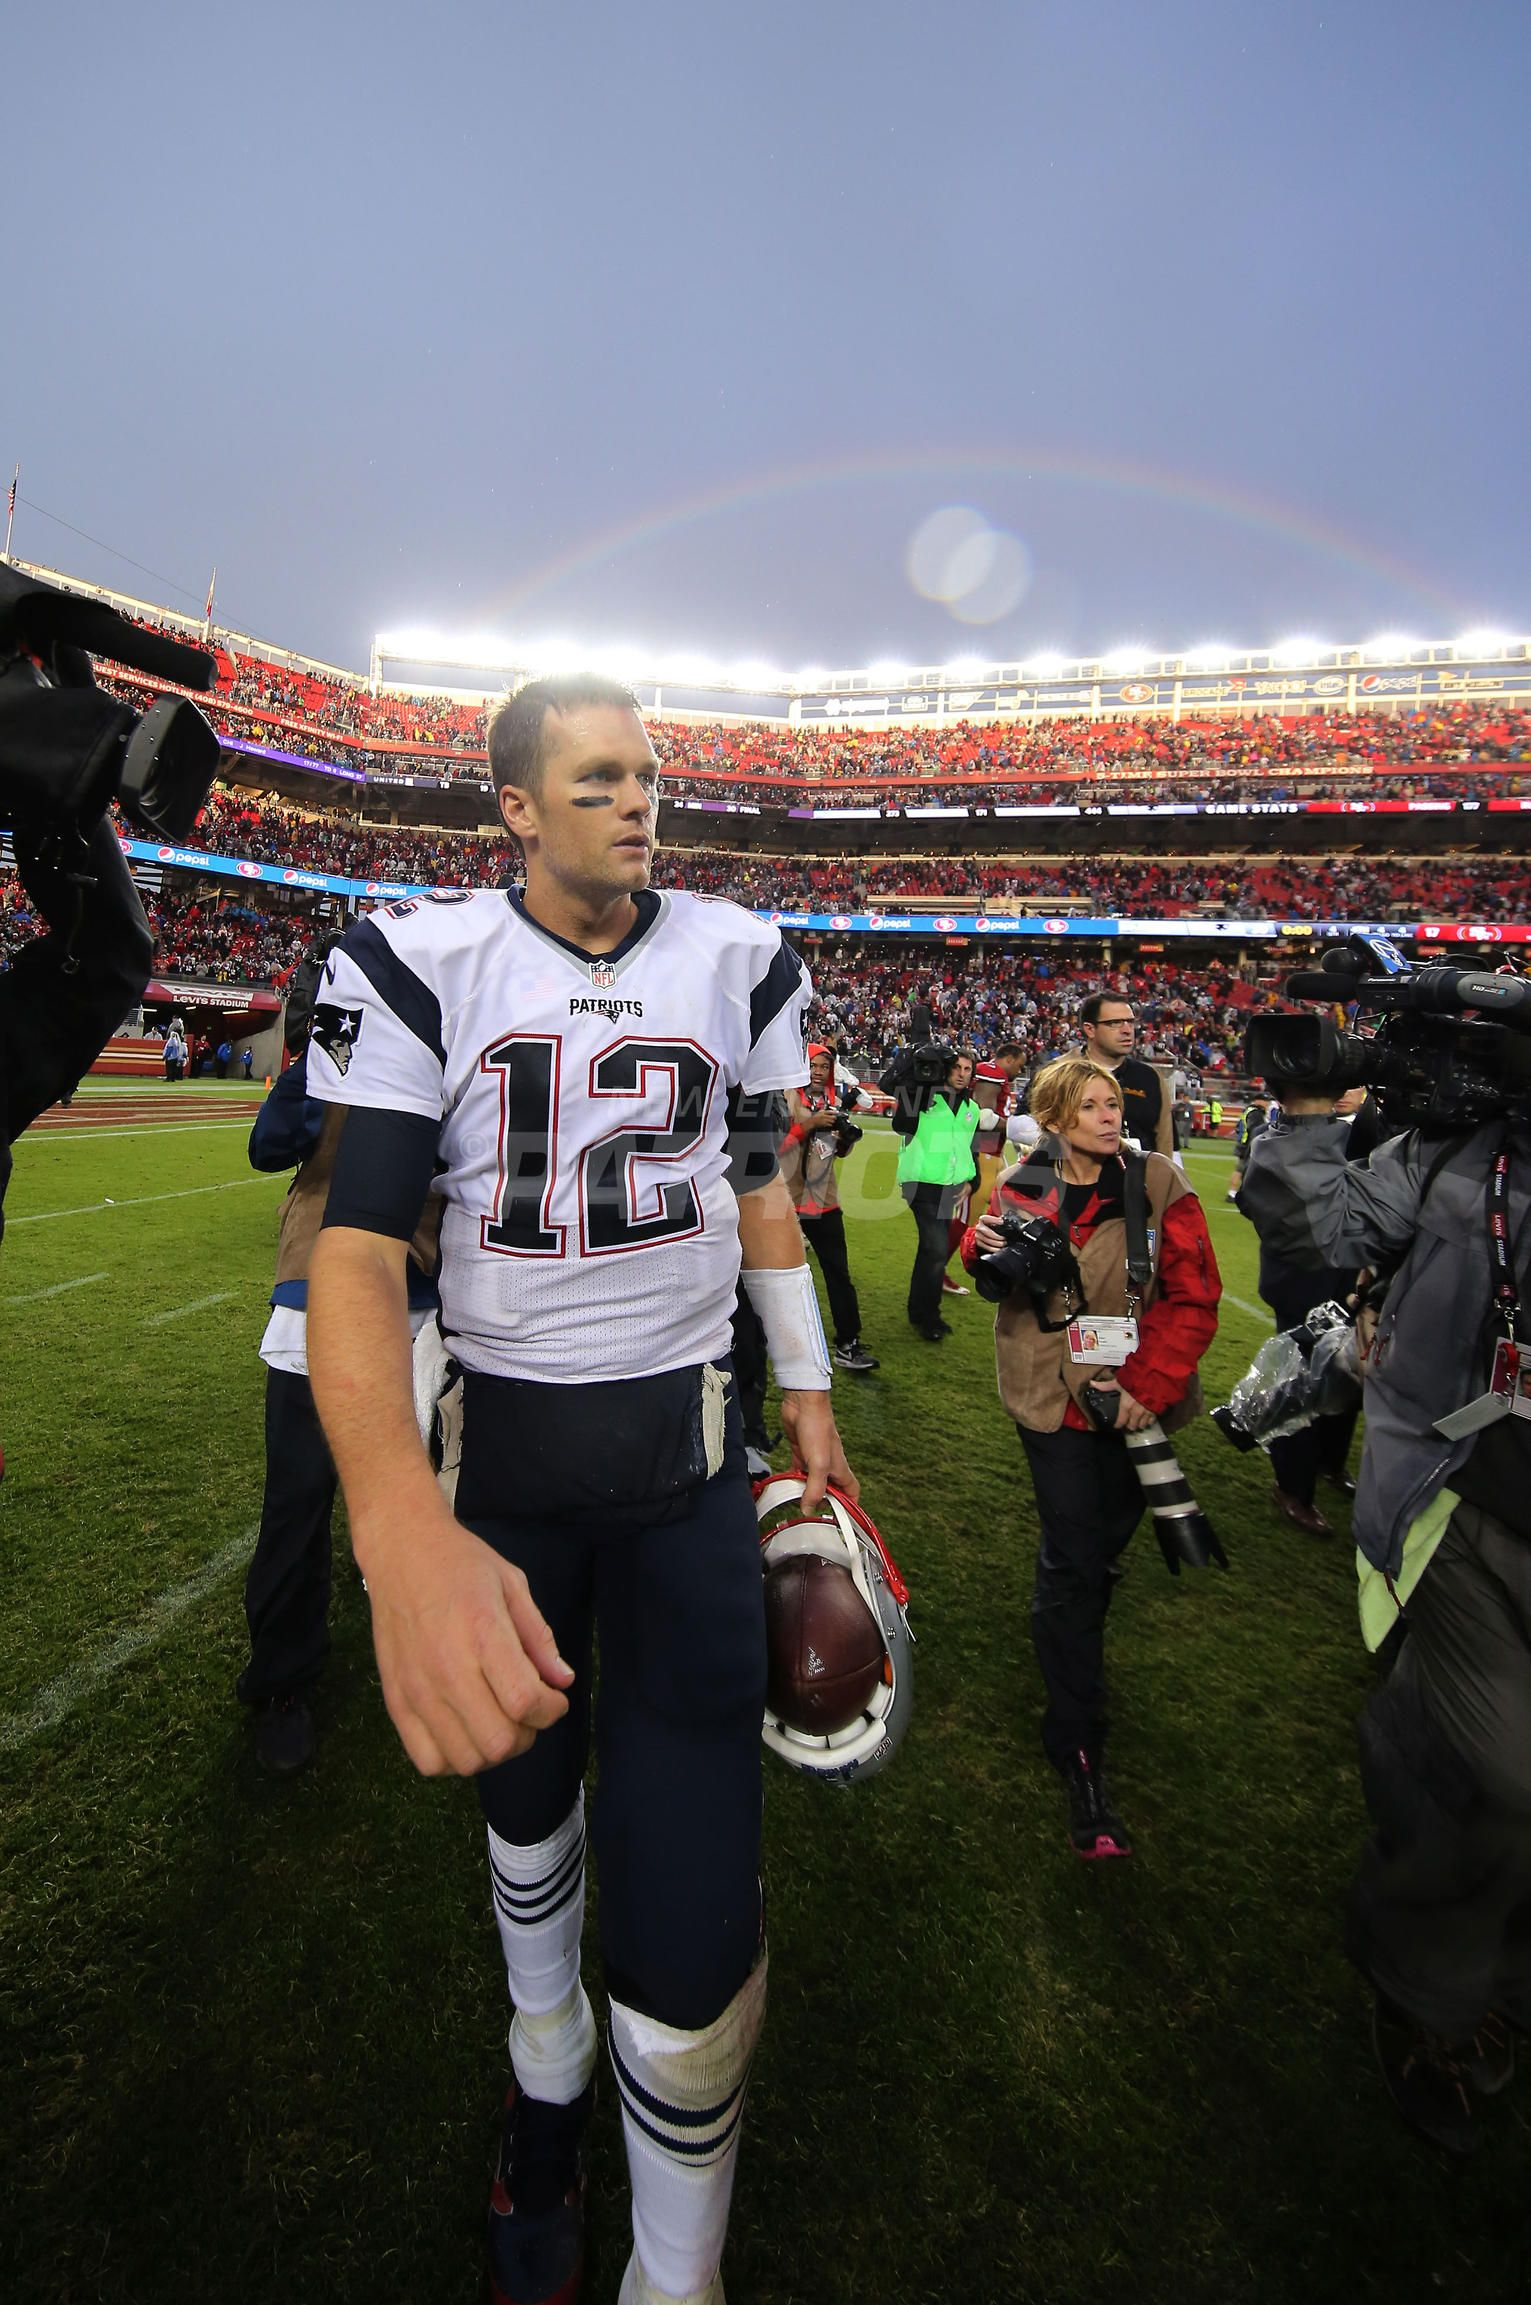 Top 5 Photos From Patriots At 49ers Presented By Carmax New England Patriots Patriots Under The Rainbow